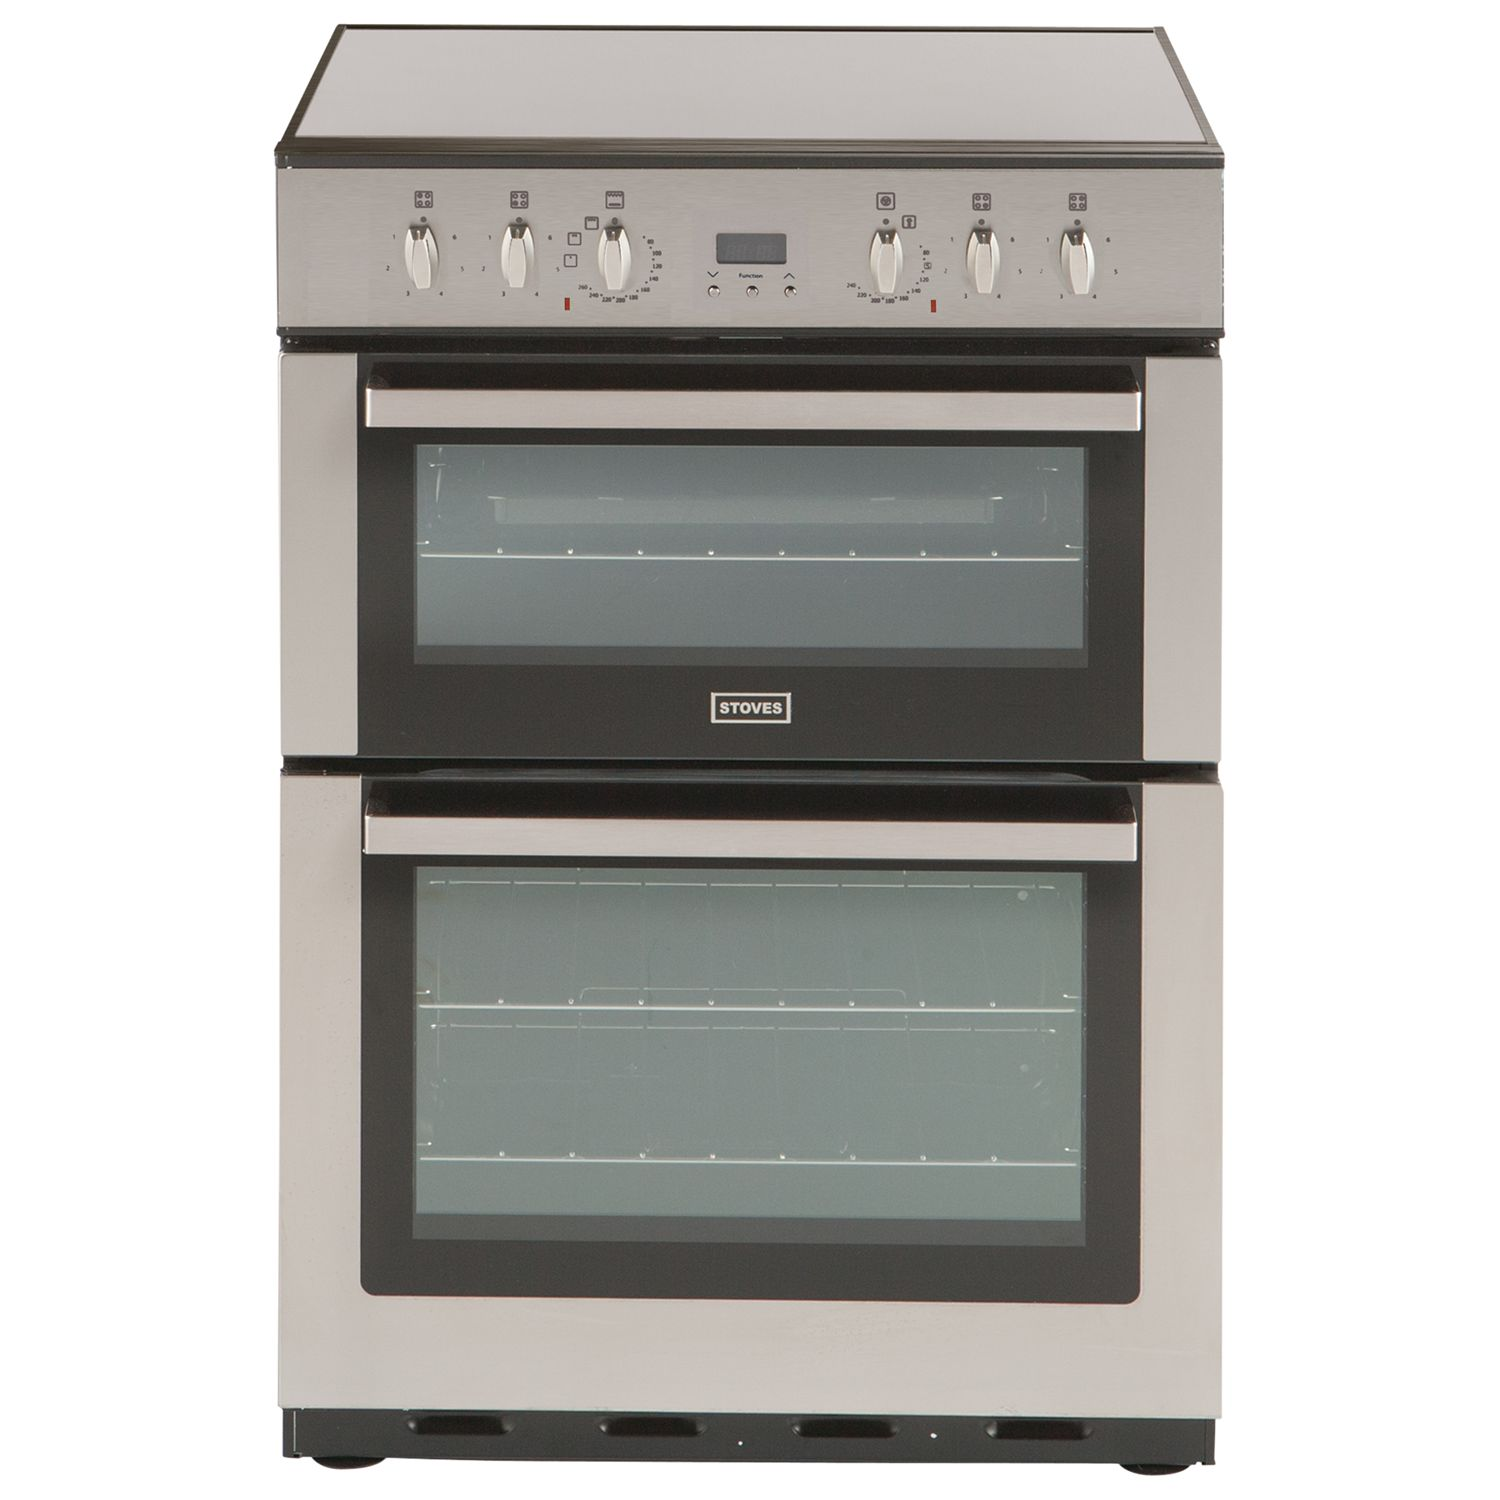 Stoves Stoves SEC60DOP Electric Cooker, Stainless Steel